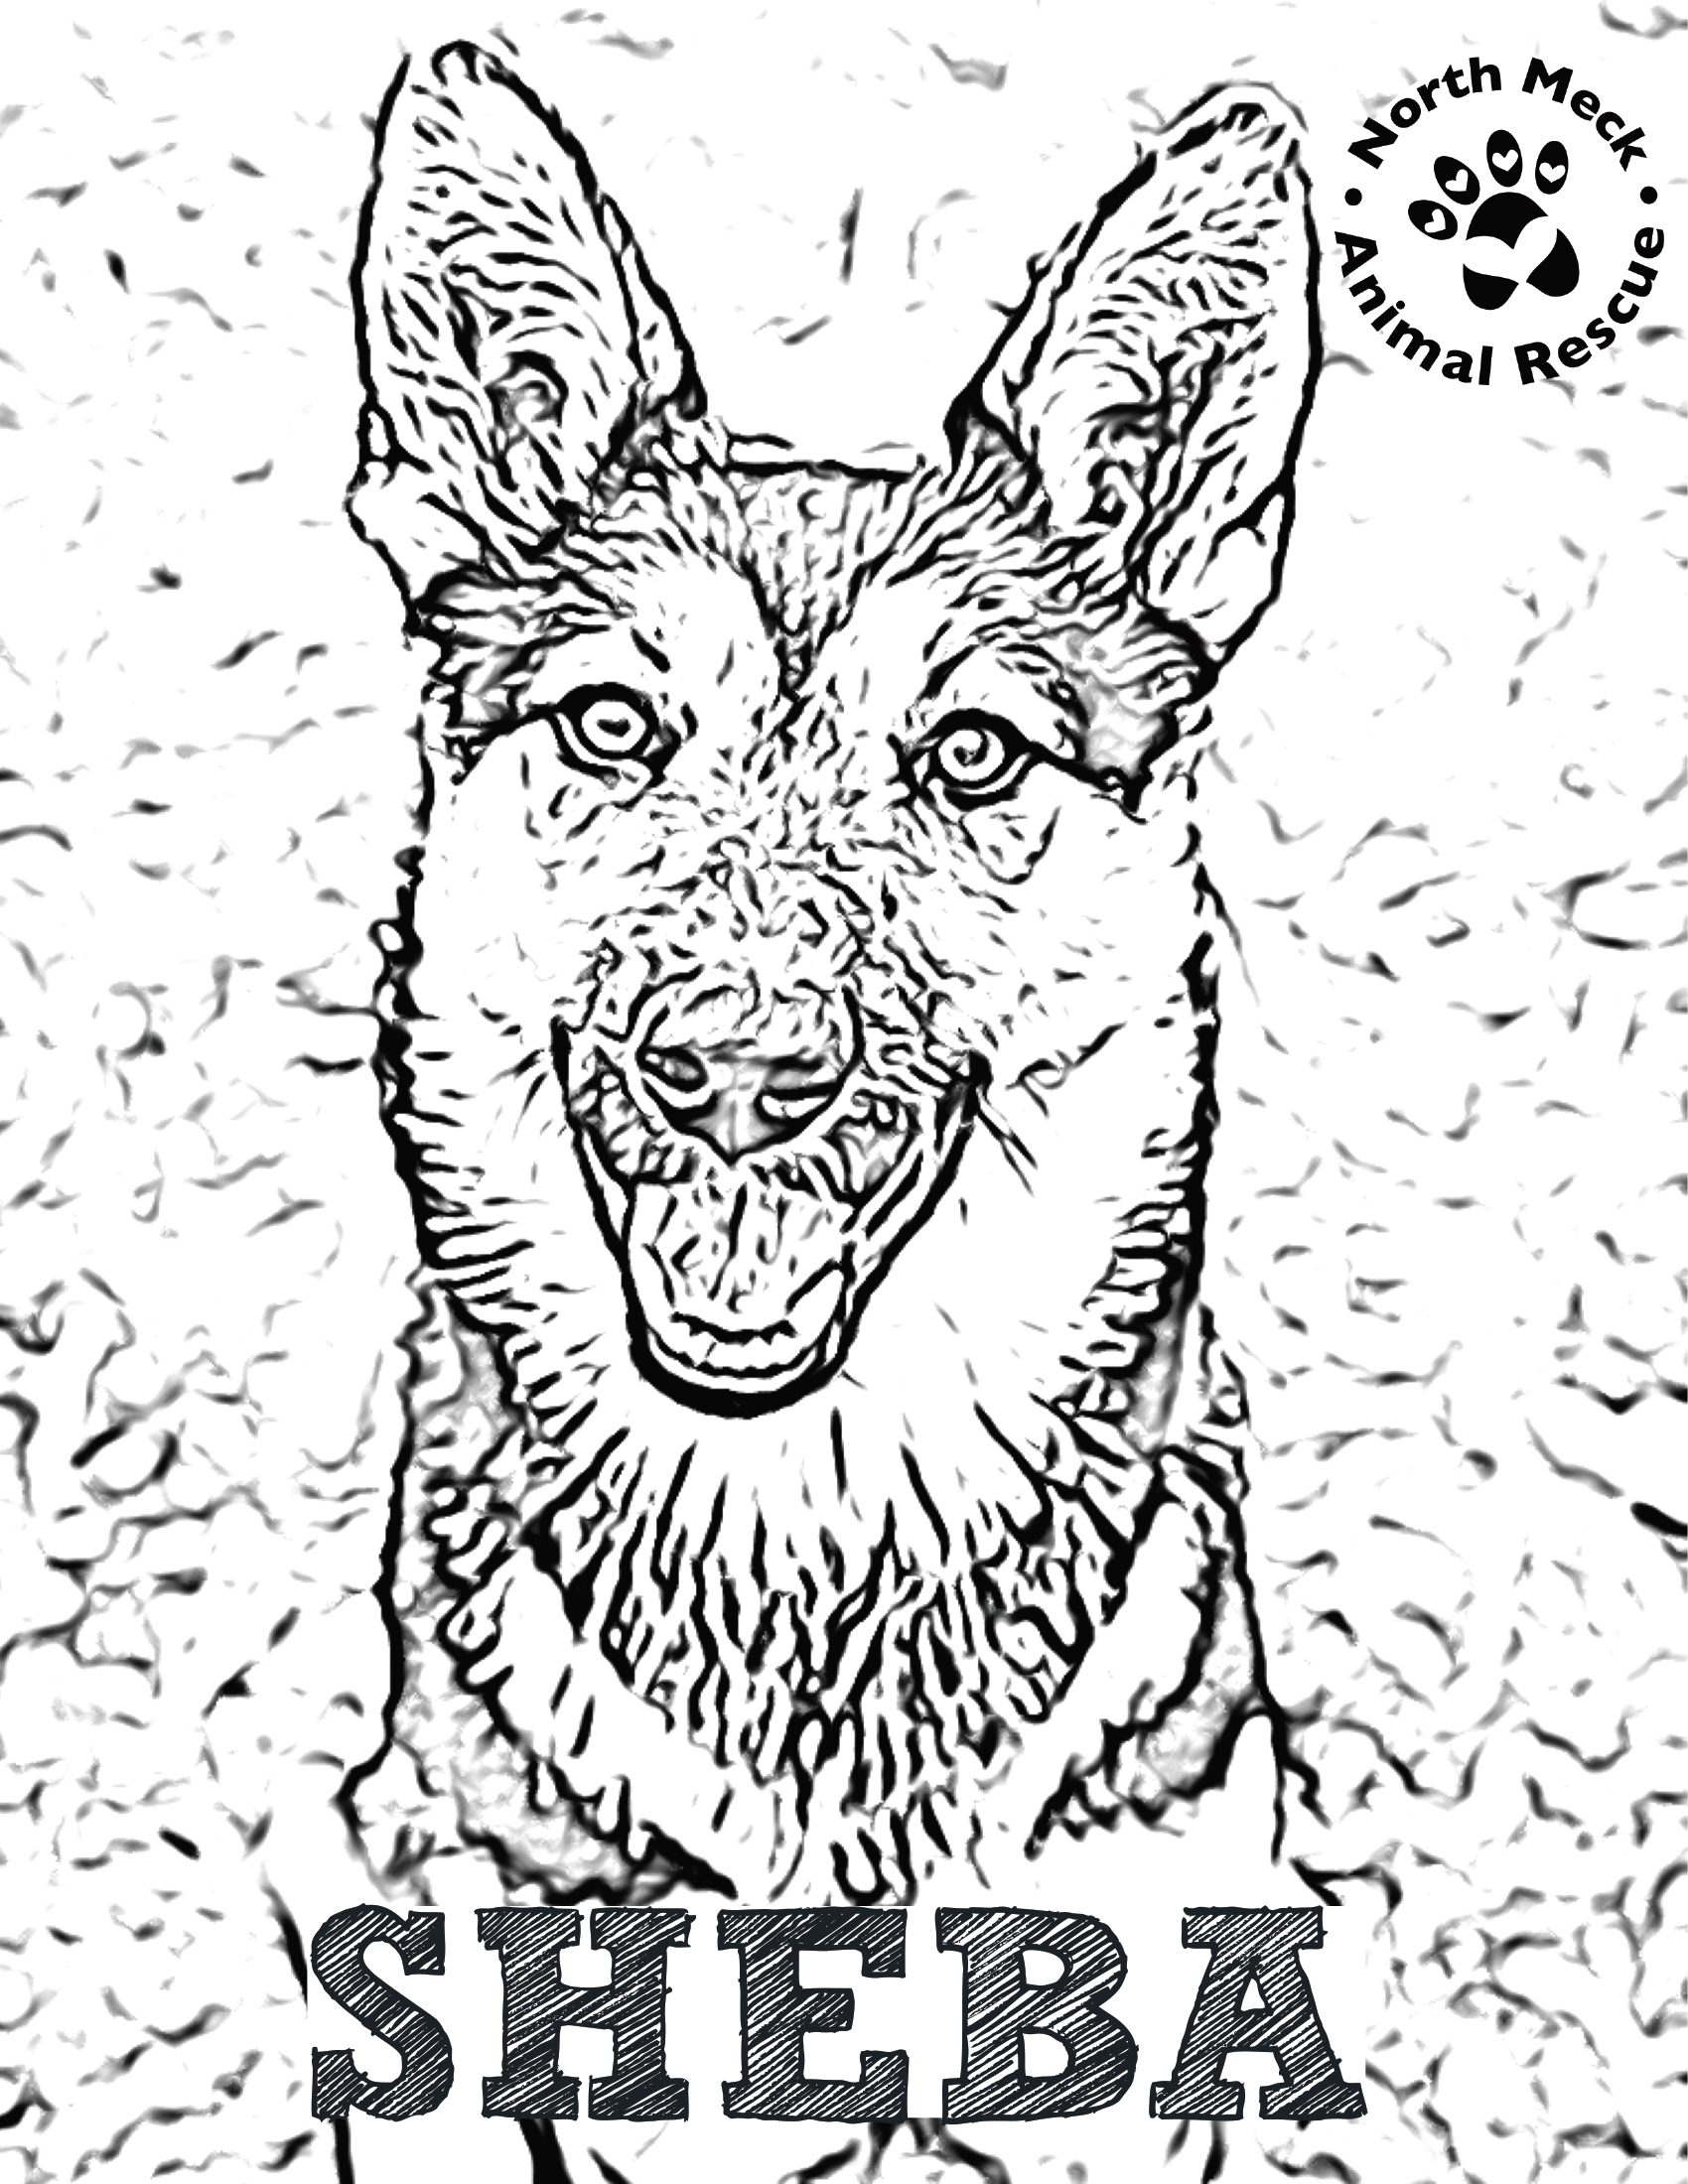 Rescue Dog Coloring Pages - North Meck Animal Rescue